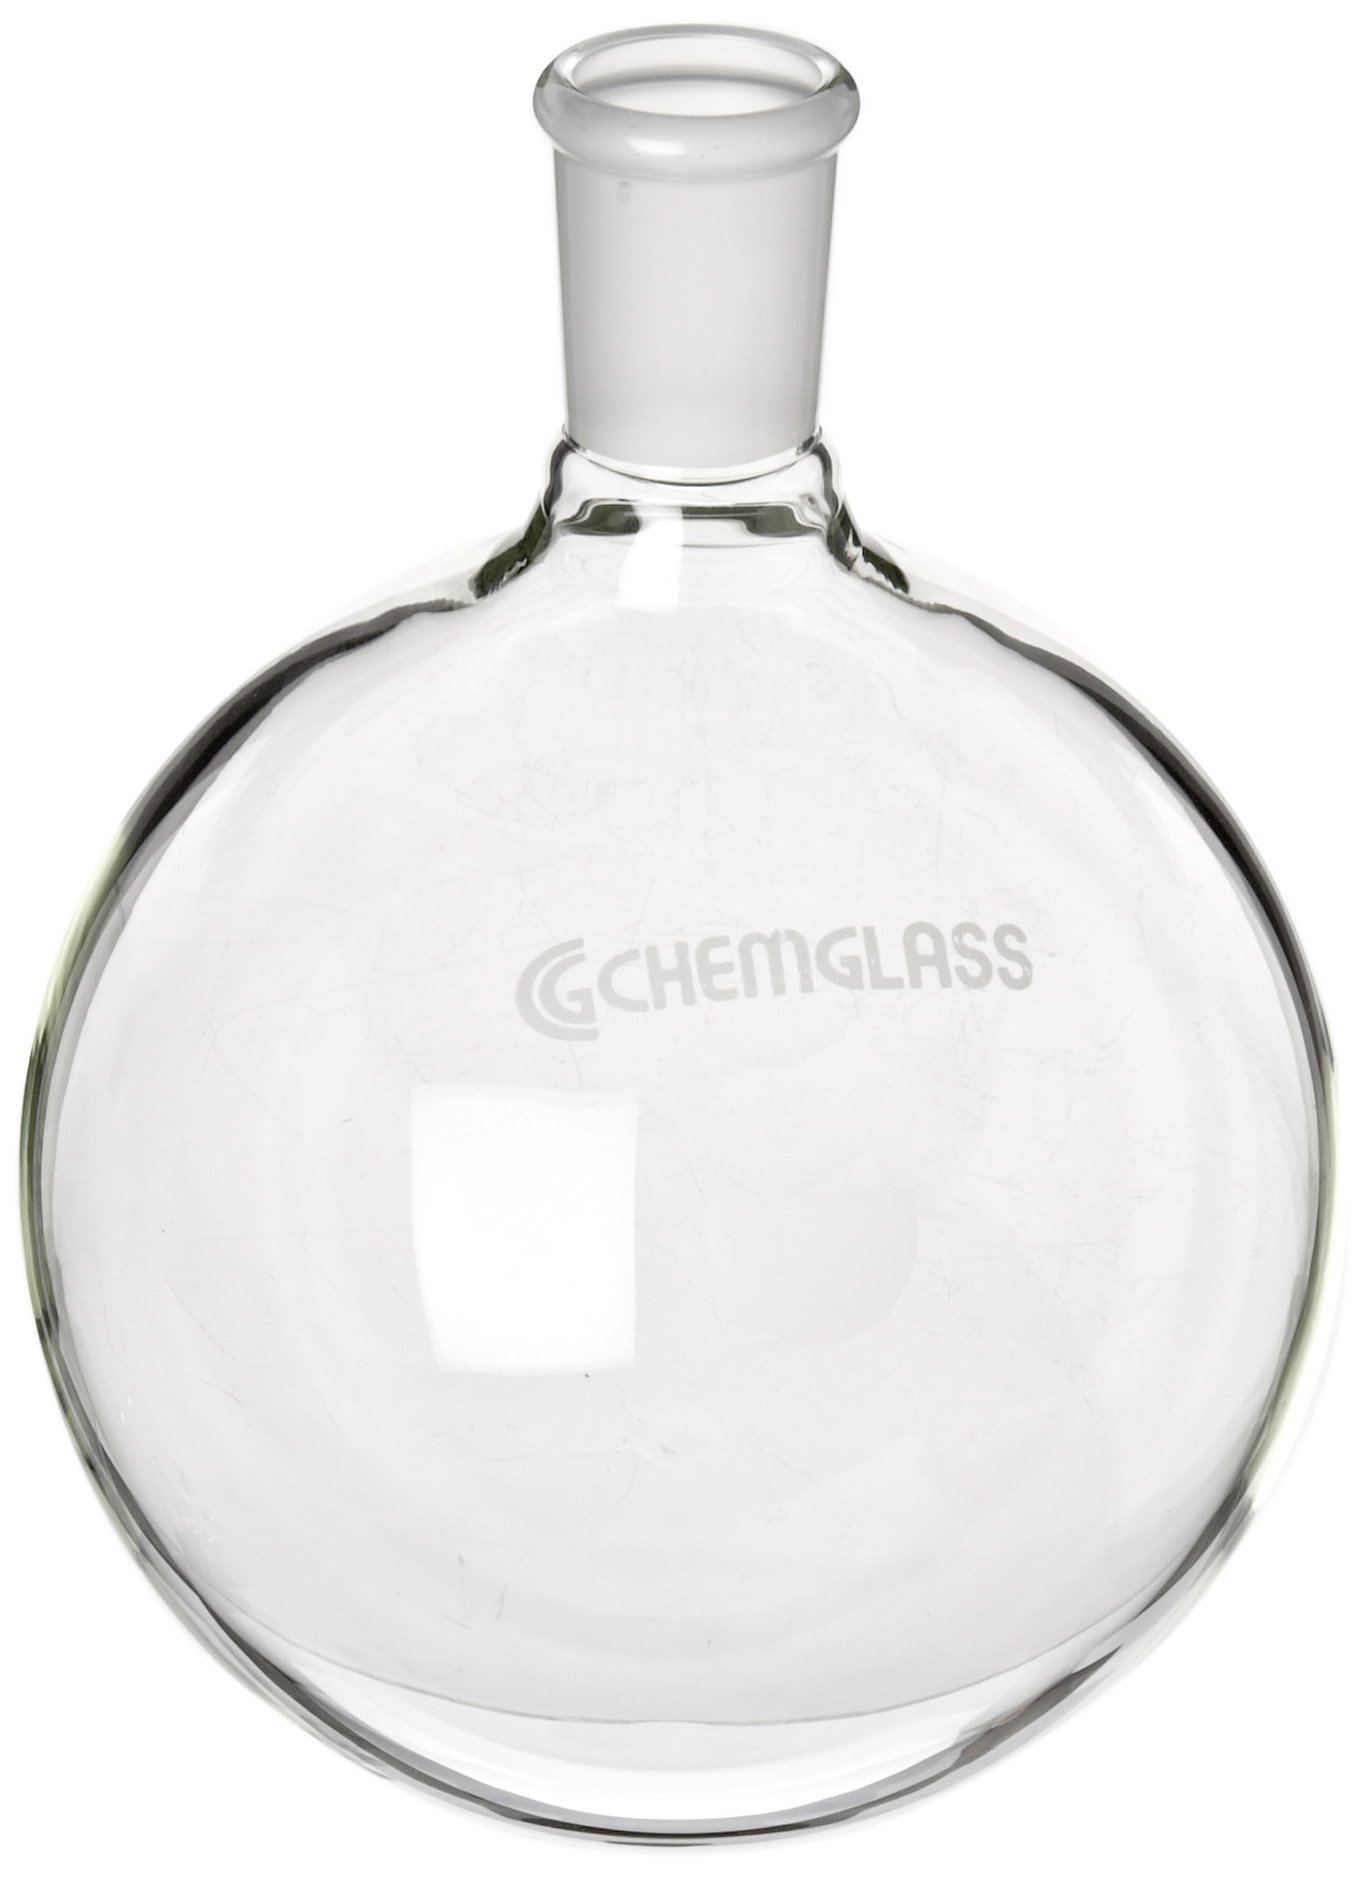 Chemglass CG-1506-26 Glass 2000mL Heavy Wall Single Neck Round Bottom Flask, with 29/42 Standard Taper Outer Joint